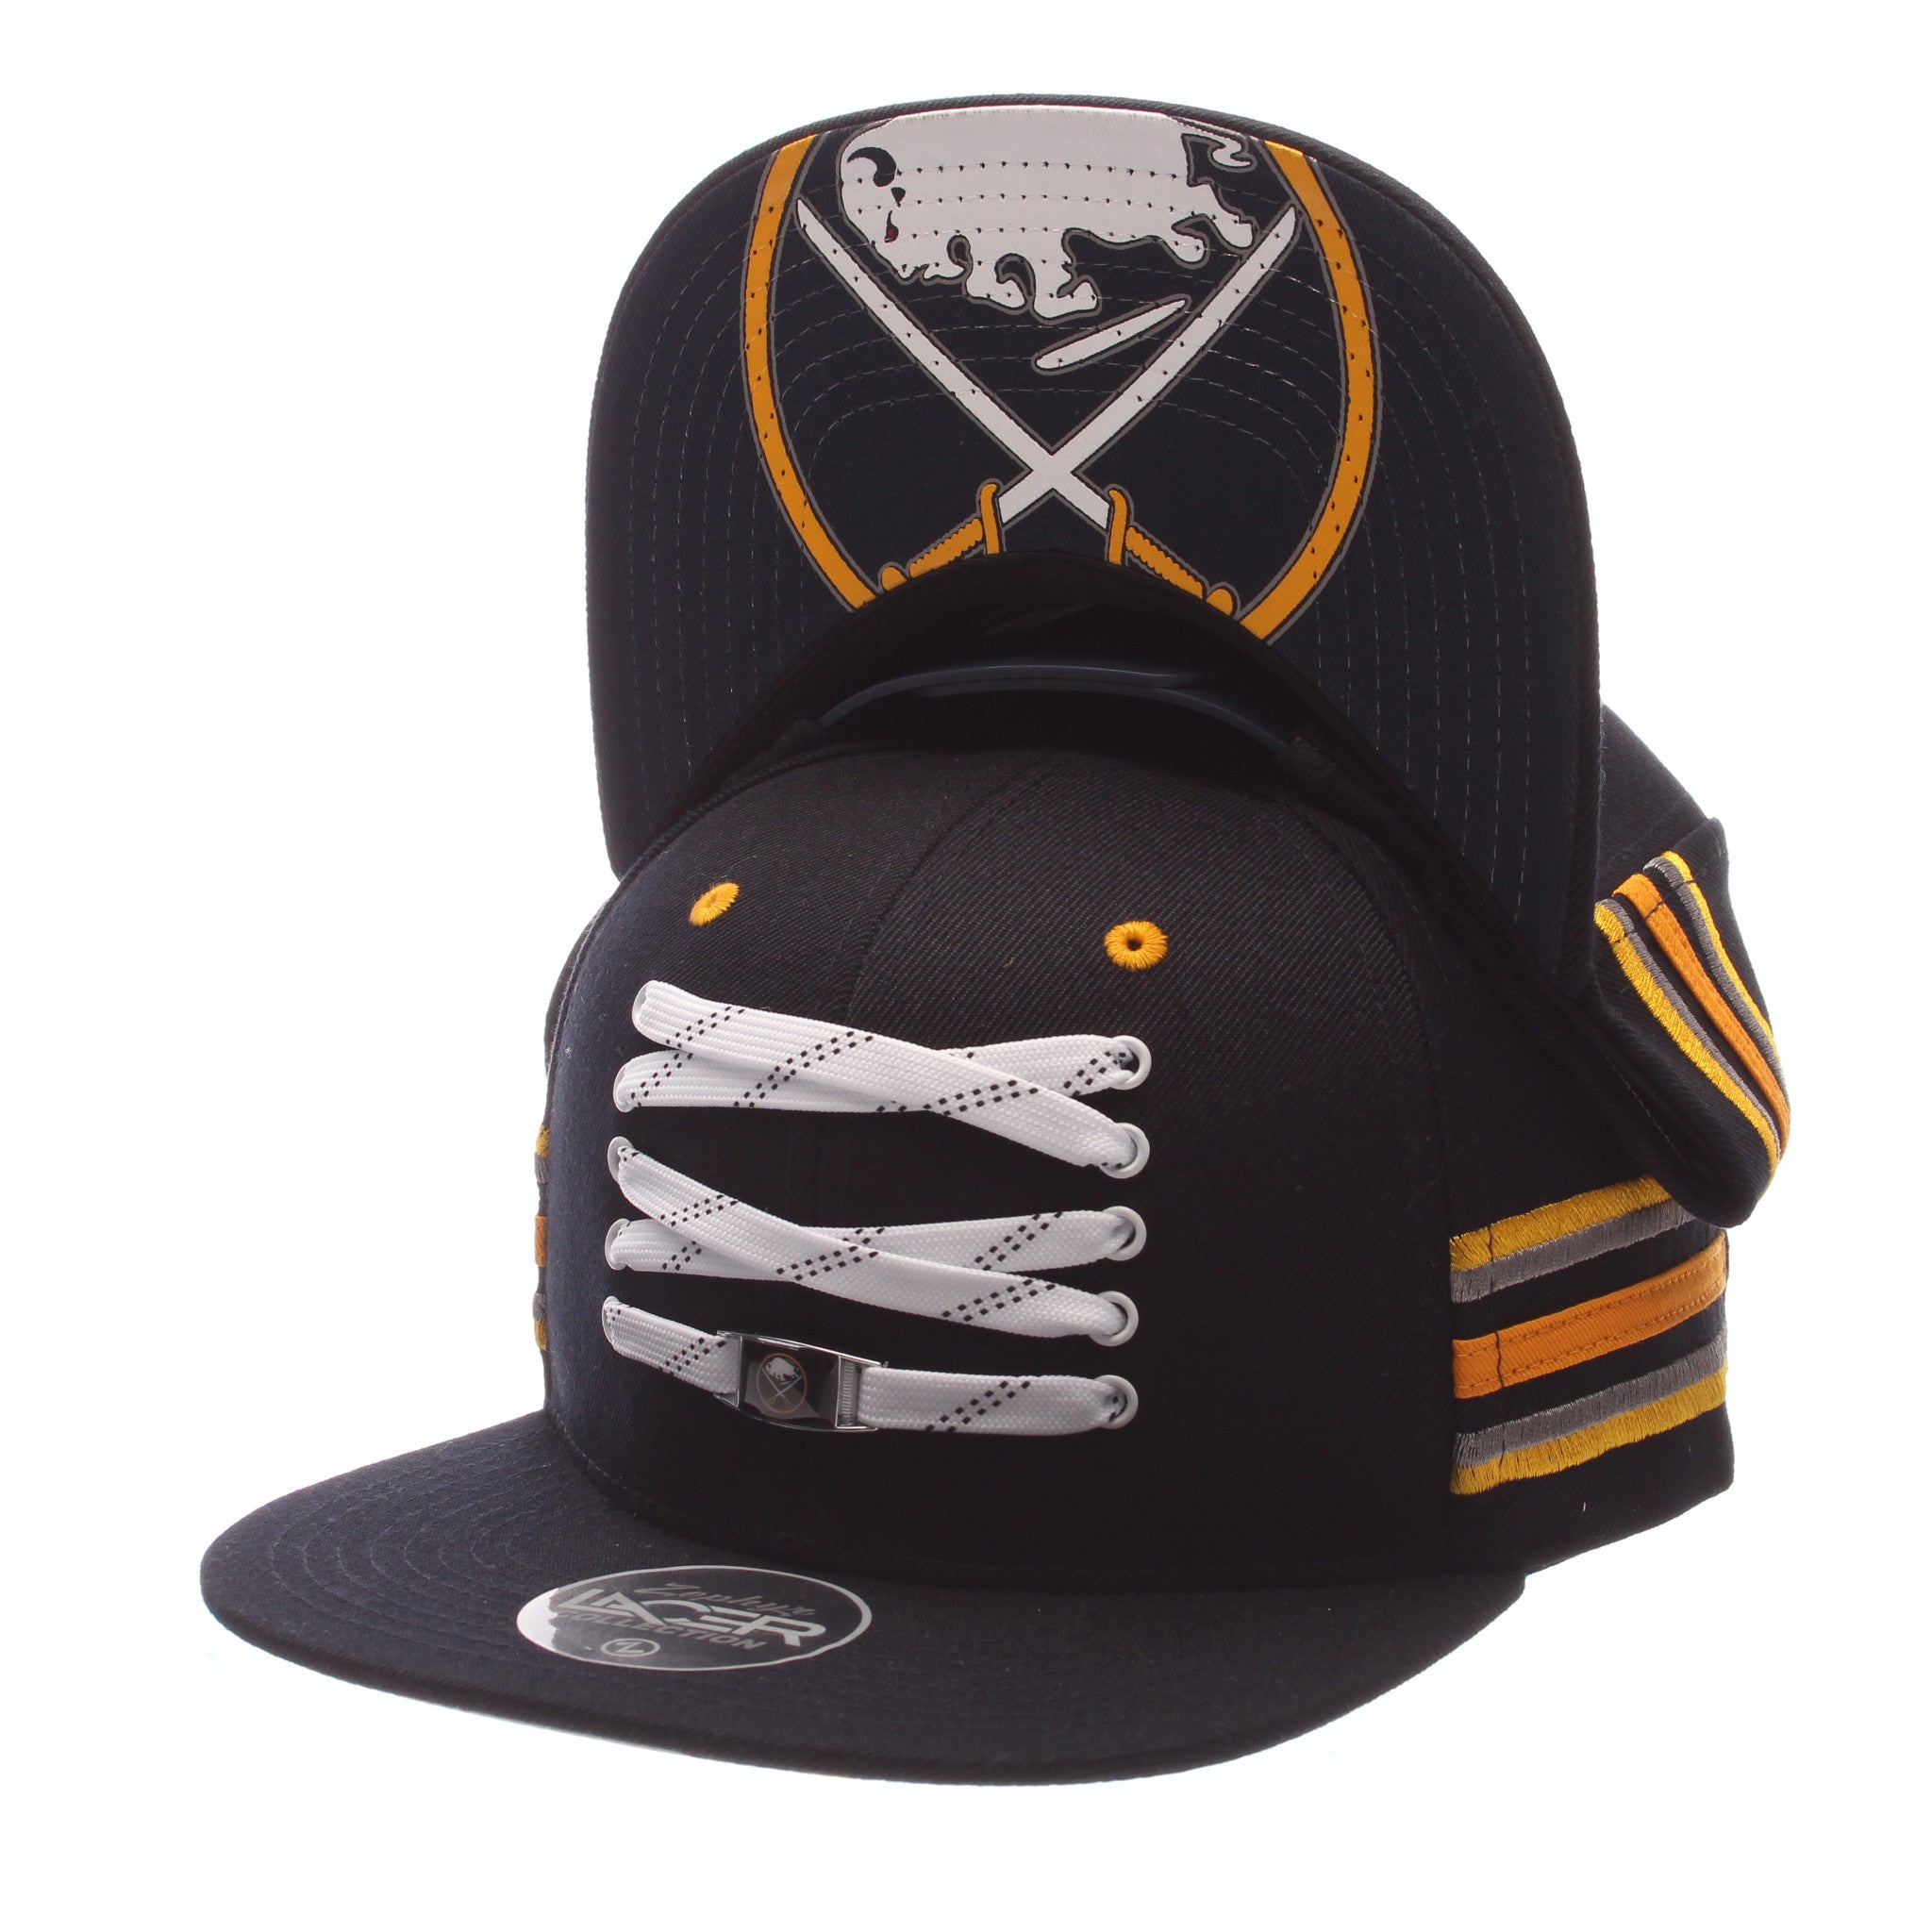 best authentic c4d59 f6618 Buffalo Sabres  Locker Room  Snapback